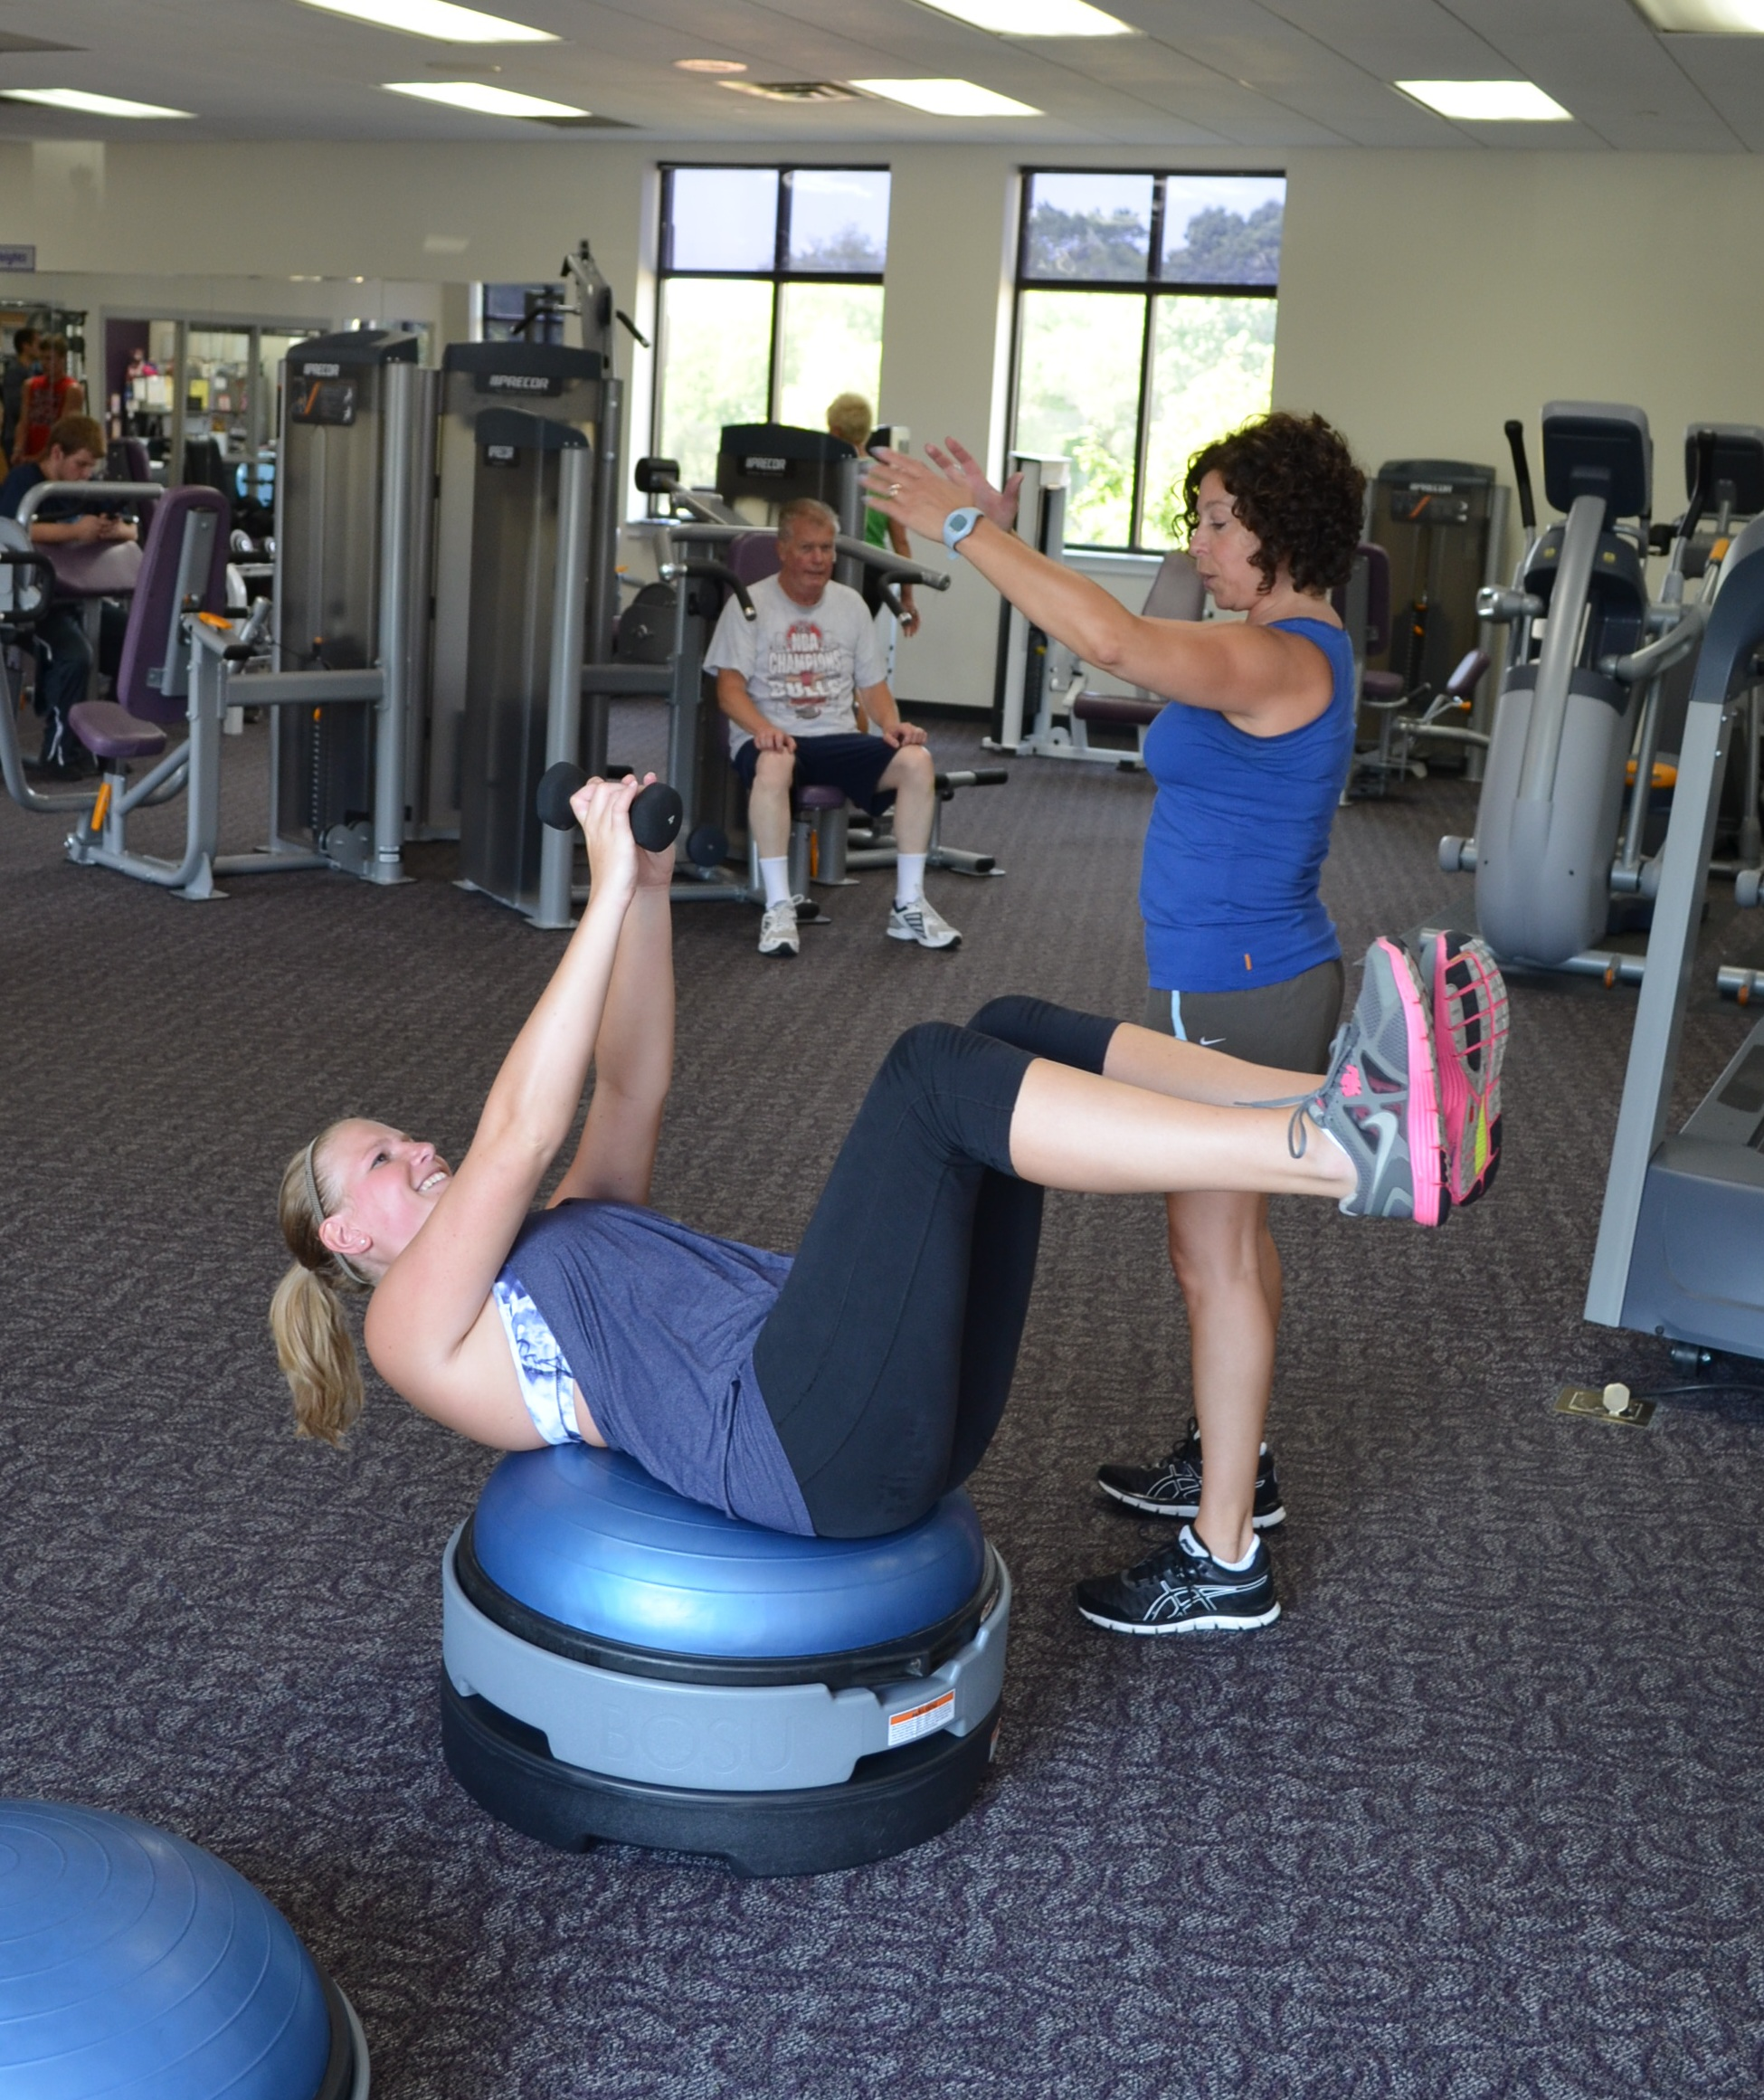 Woman exercising on a strengthening ball with an instructor